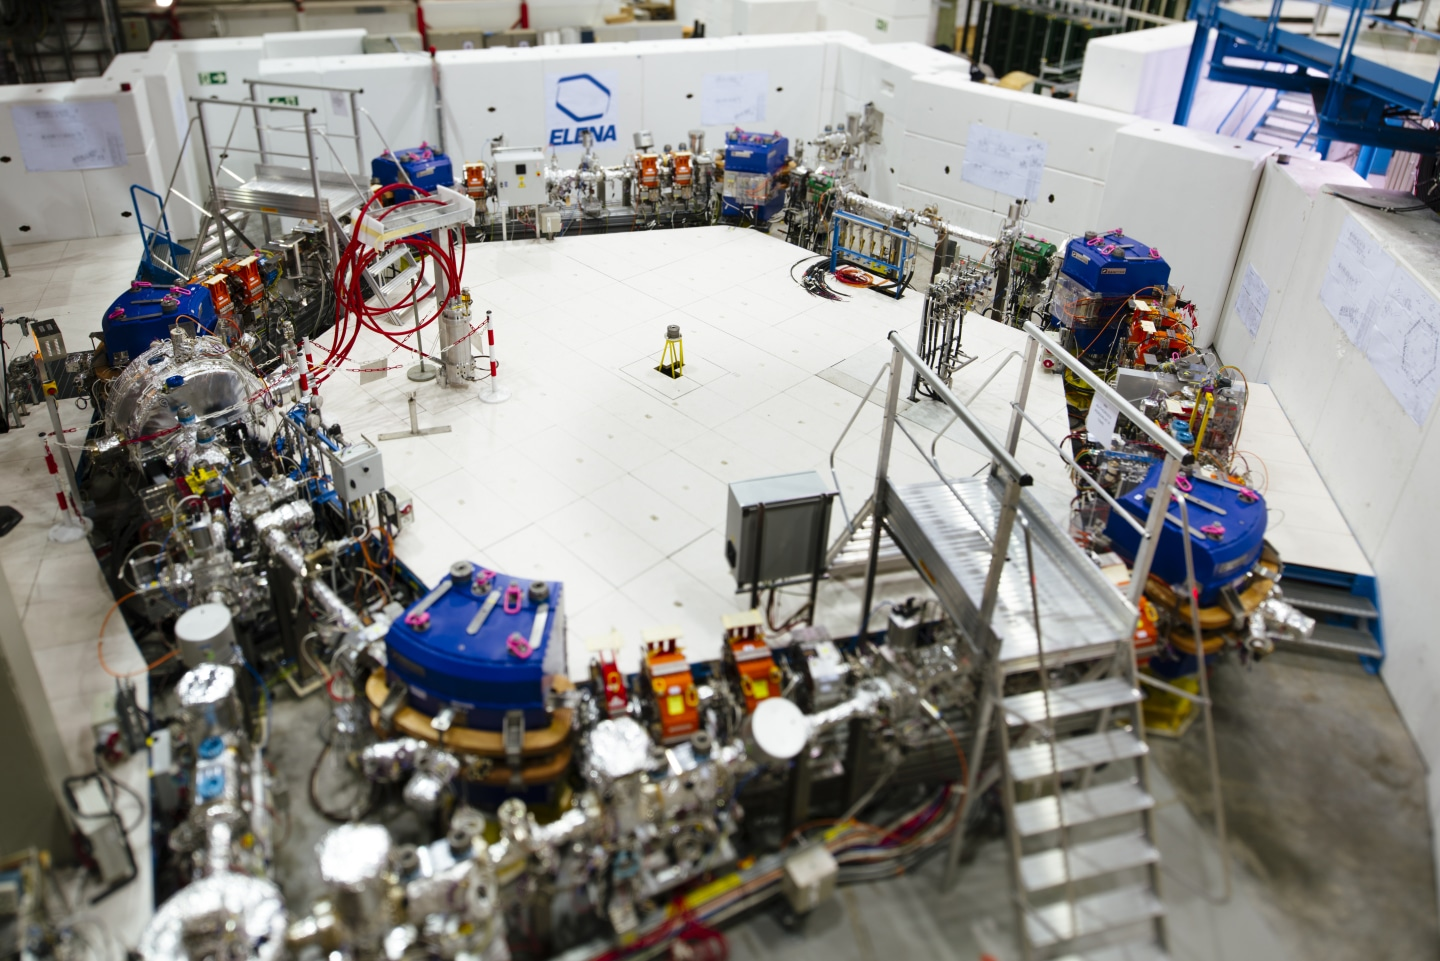 """ELENA storage ring where antiprotons are decelerated to lowest energies"""" Image credit: CERN."""